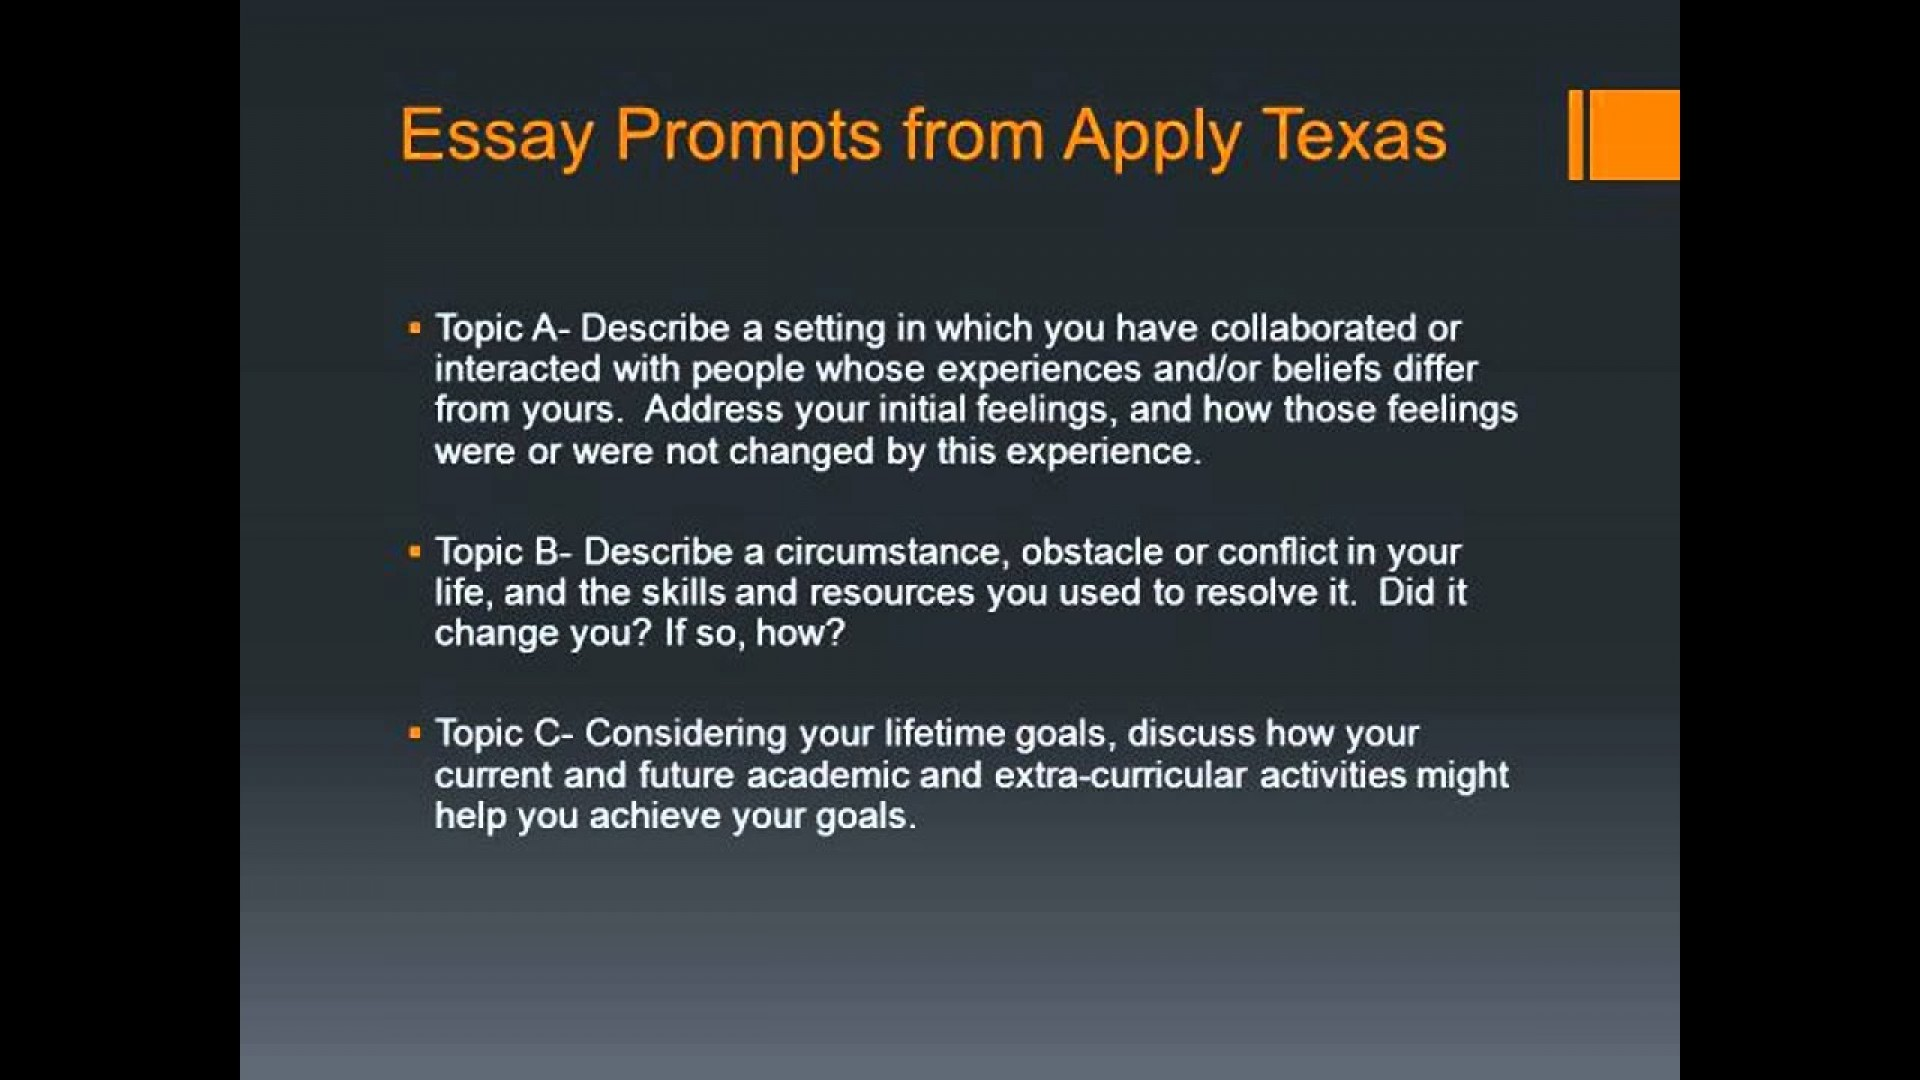 006 Essay Example Apply Texas Examples Unusual Topic A College 2016 C 1920